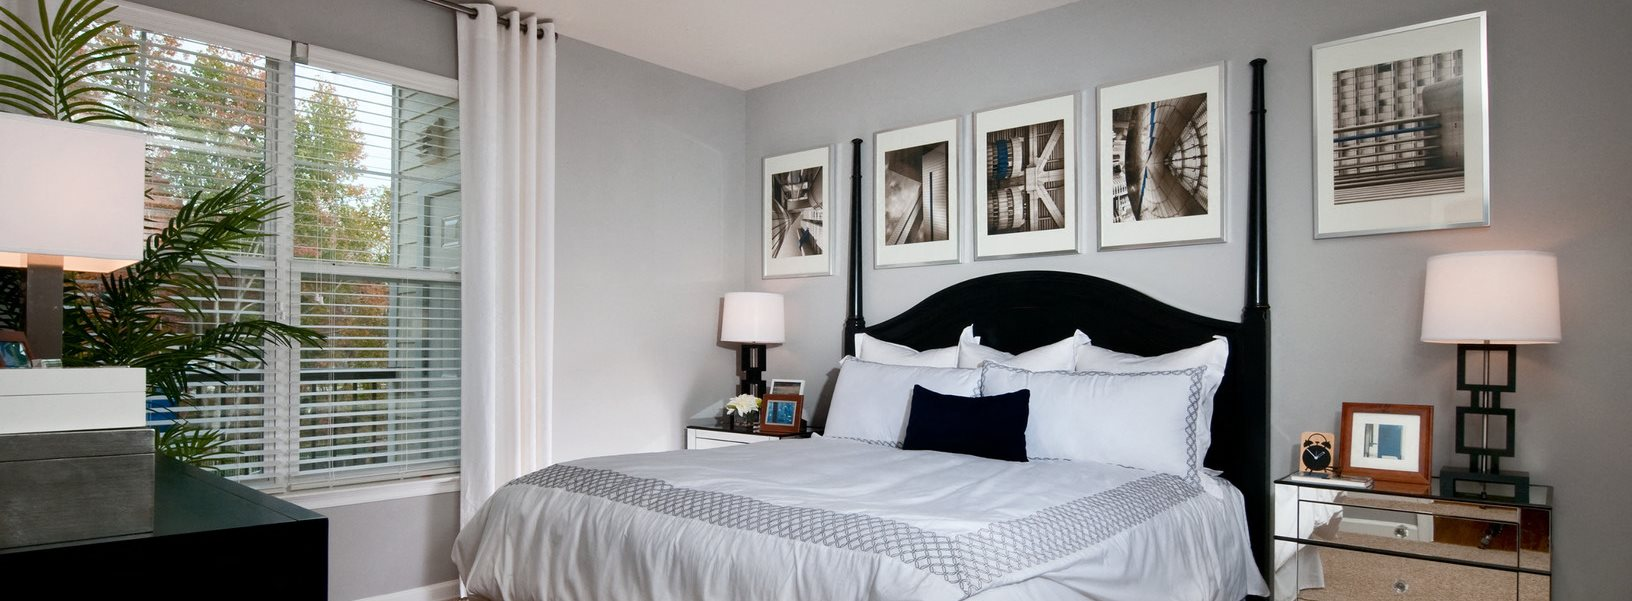 Luxury Apartments In Hanover Md